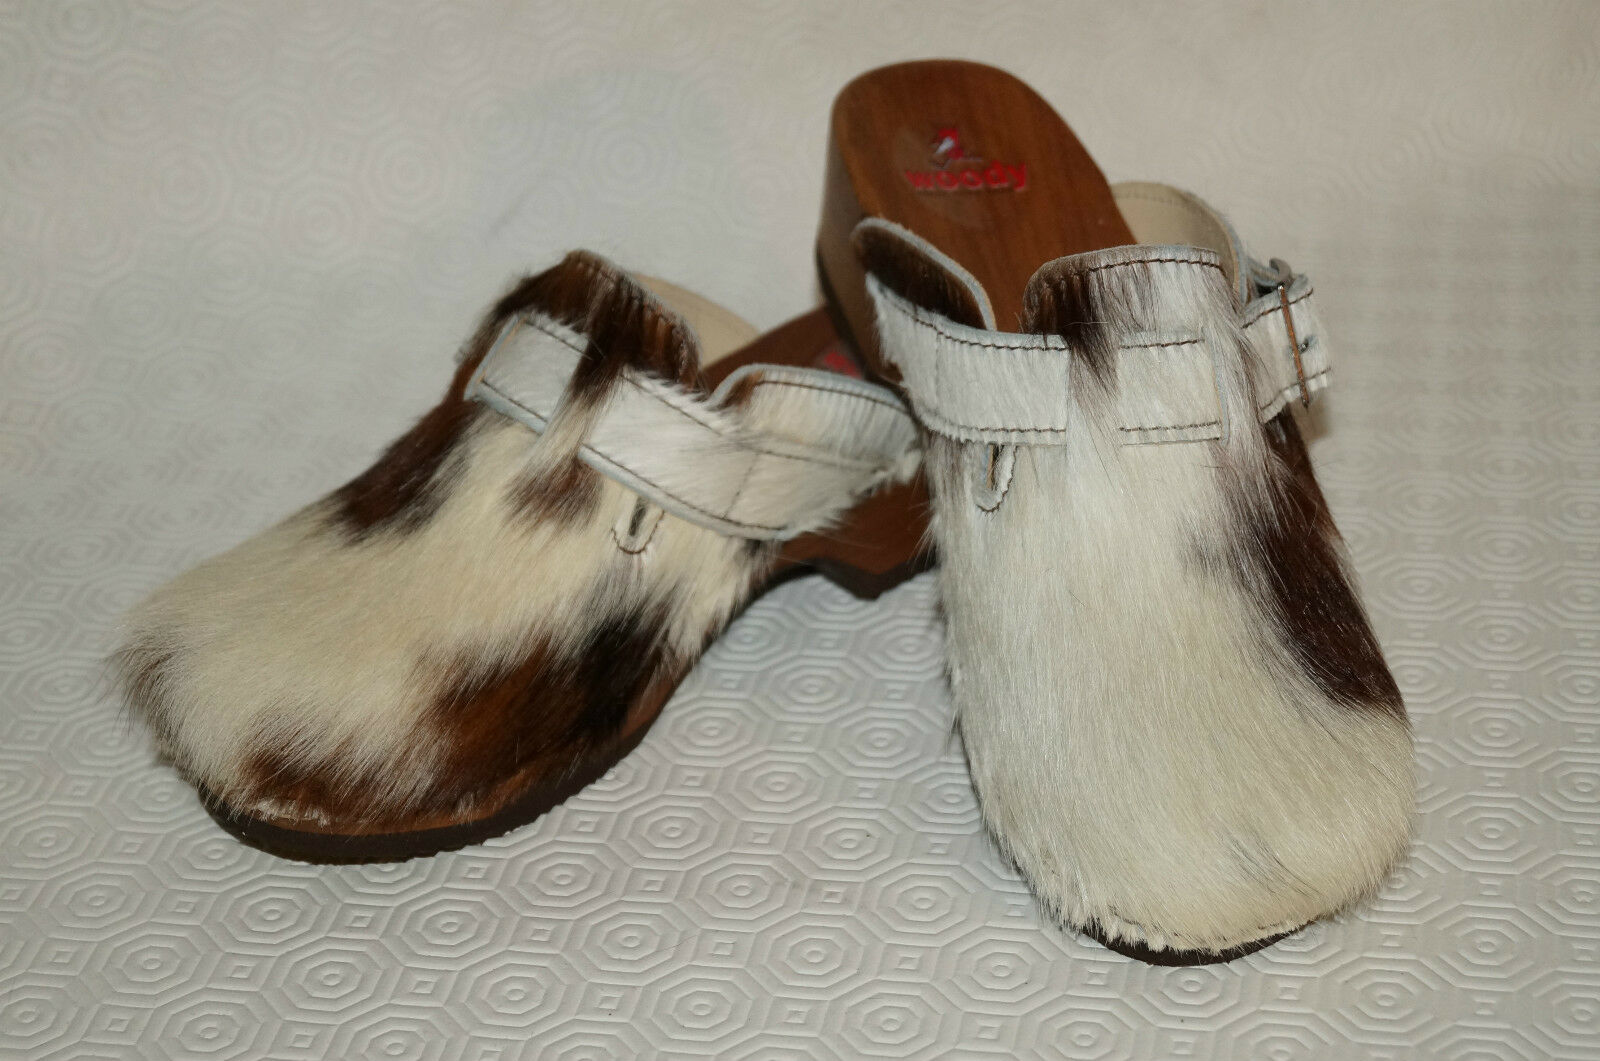 Woody Damen Clogs NEU Pantolette wood-o-flex Fell Naturfell NEU Clogs Gr. 36 bis 42 6b8853